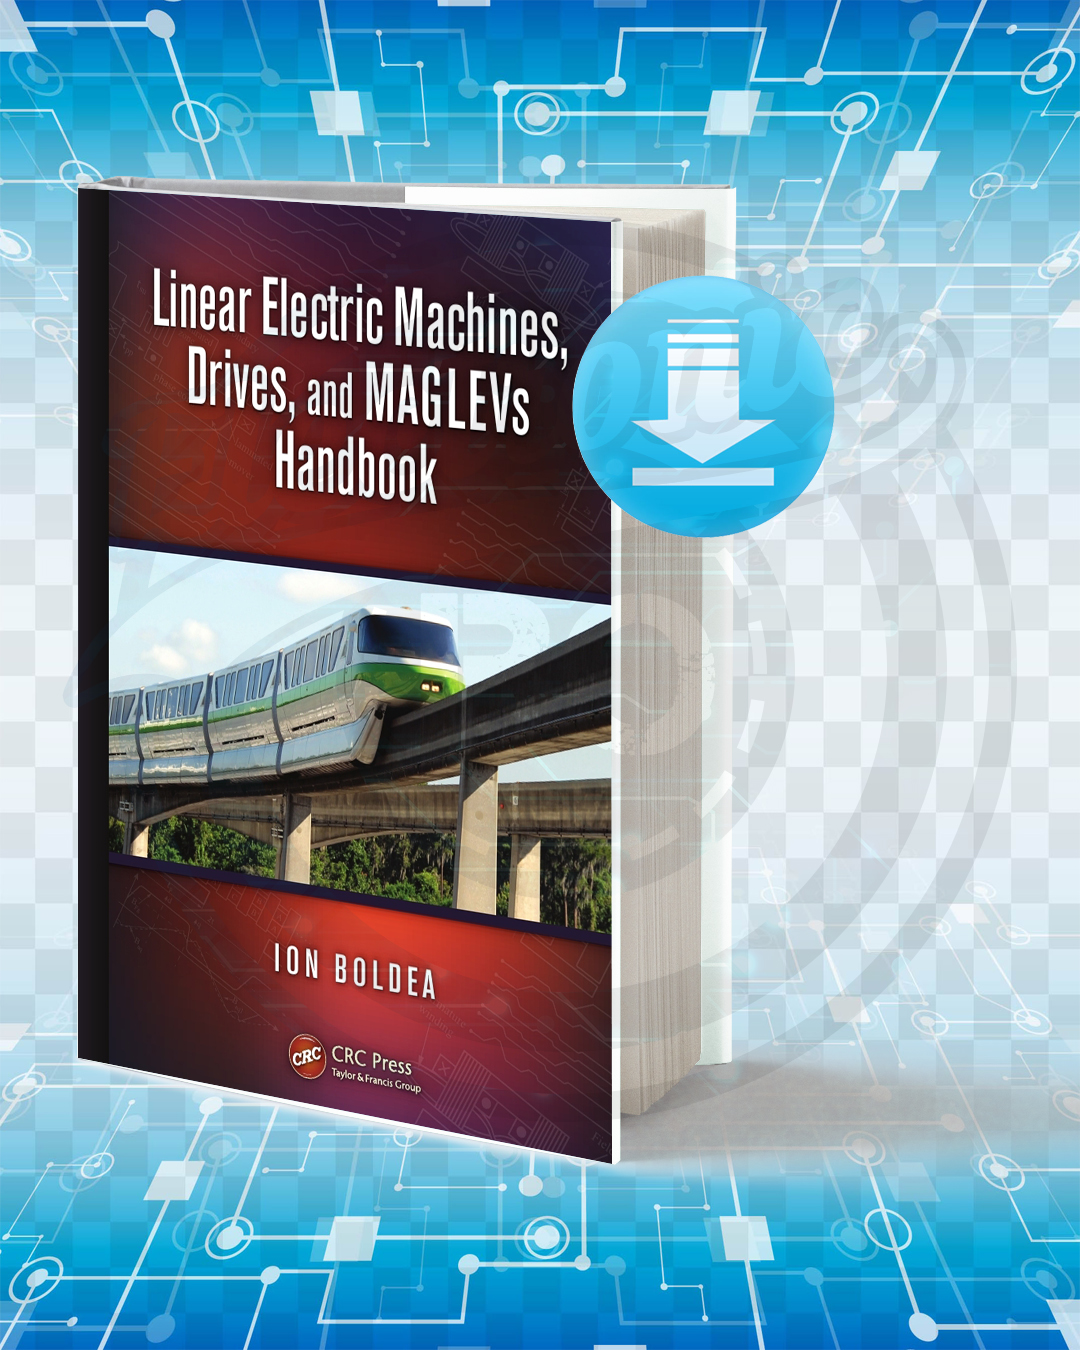 Free Book Linear Electric Machines, Drives, and MAGLEVs Handbook pdf.